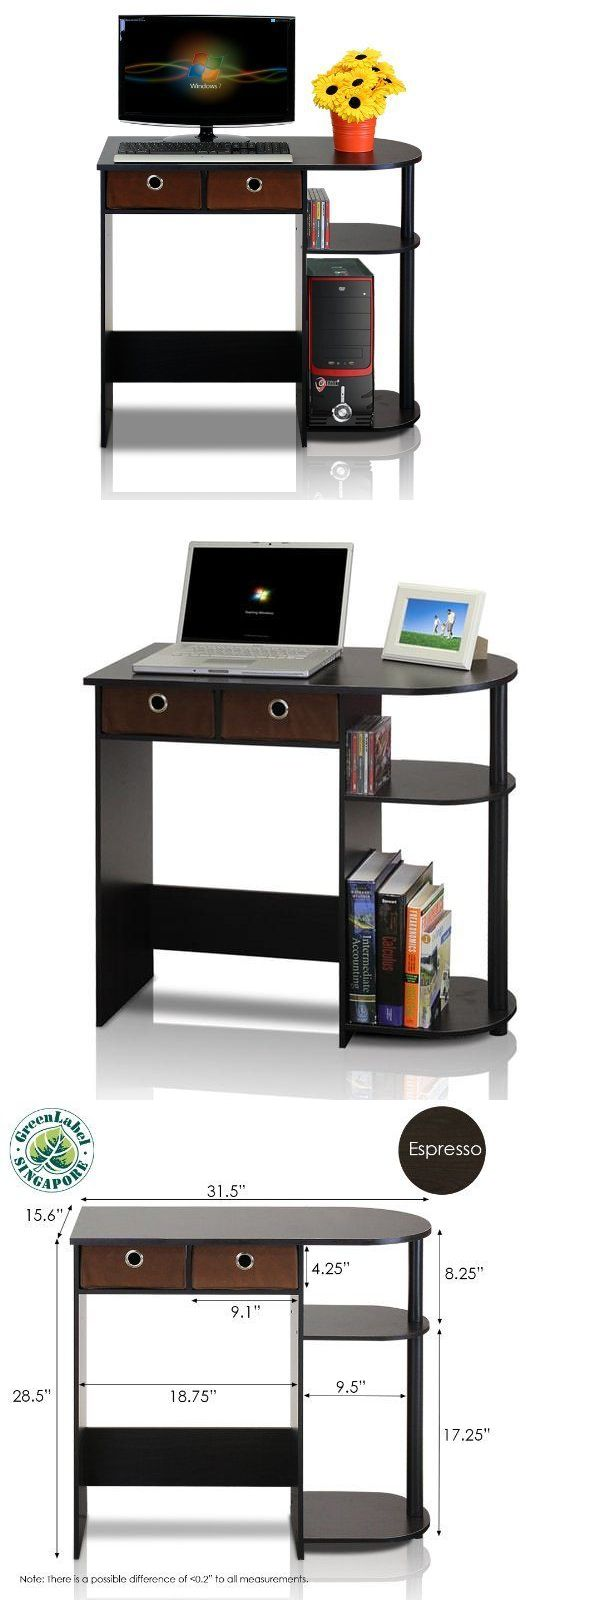 Desks and Home Office Furniture 88057: Computer Desks For Cheap Small Fabric Drawers Shelves Black Brown Student Laptop -> BUY IT NOW ONLY: $69.08 on eBay!